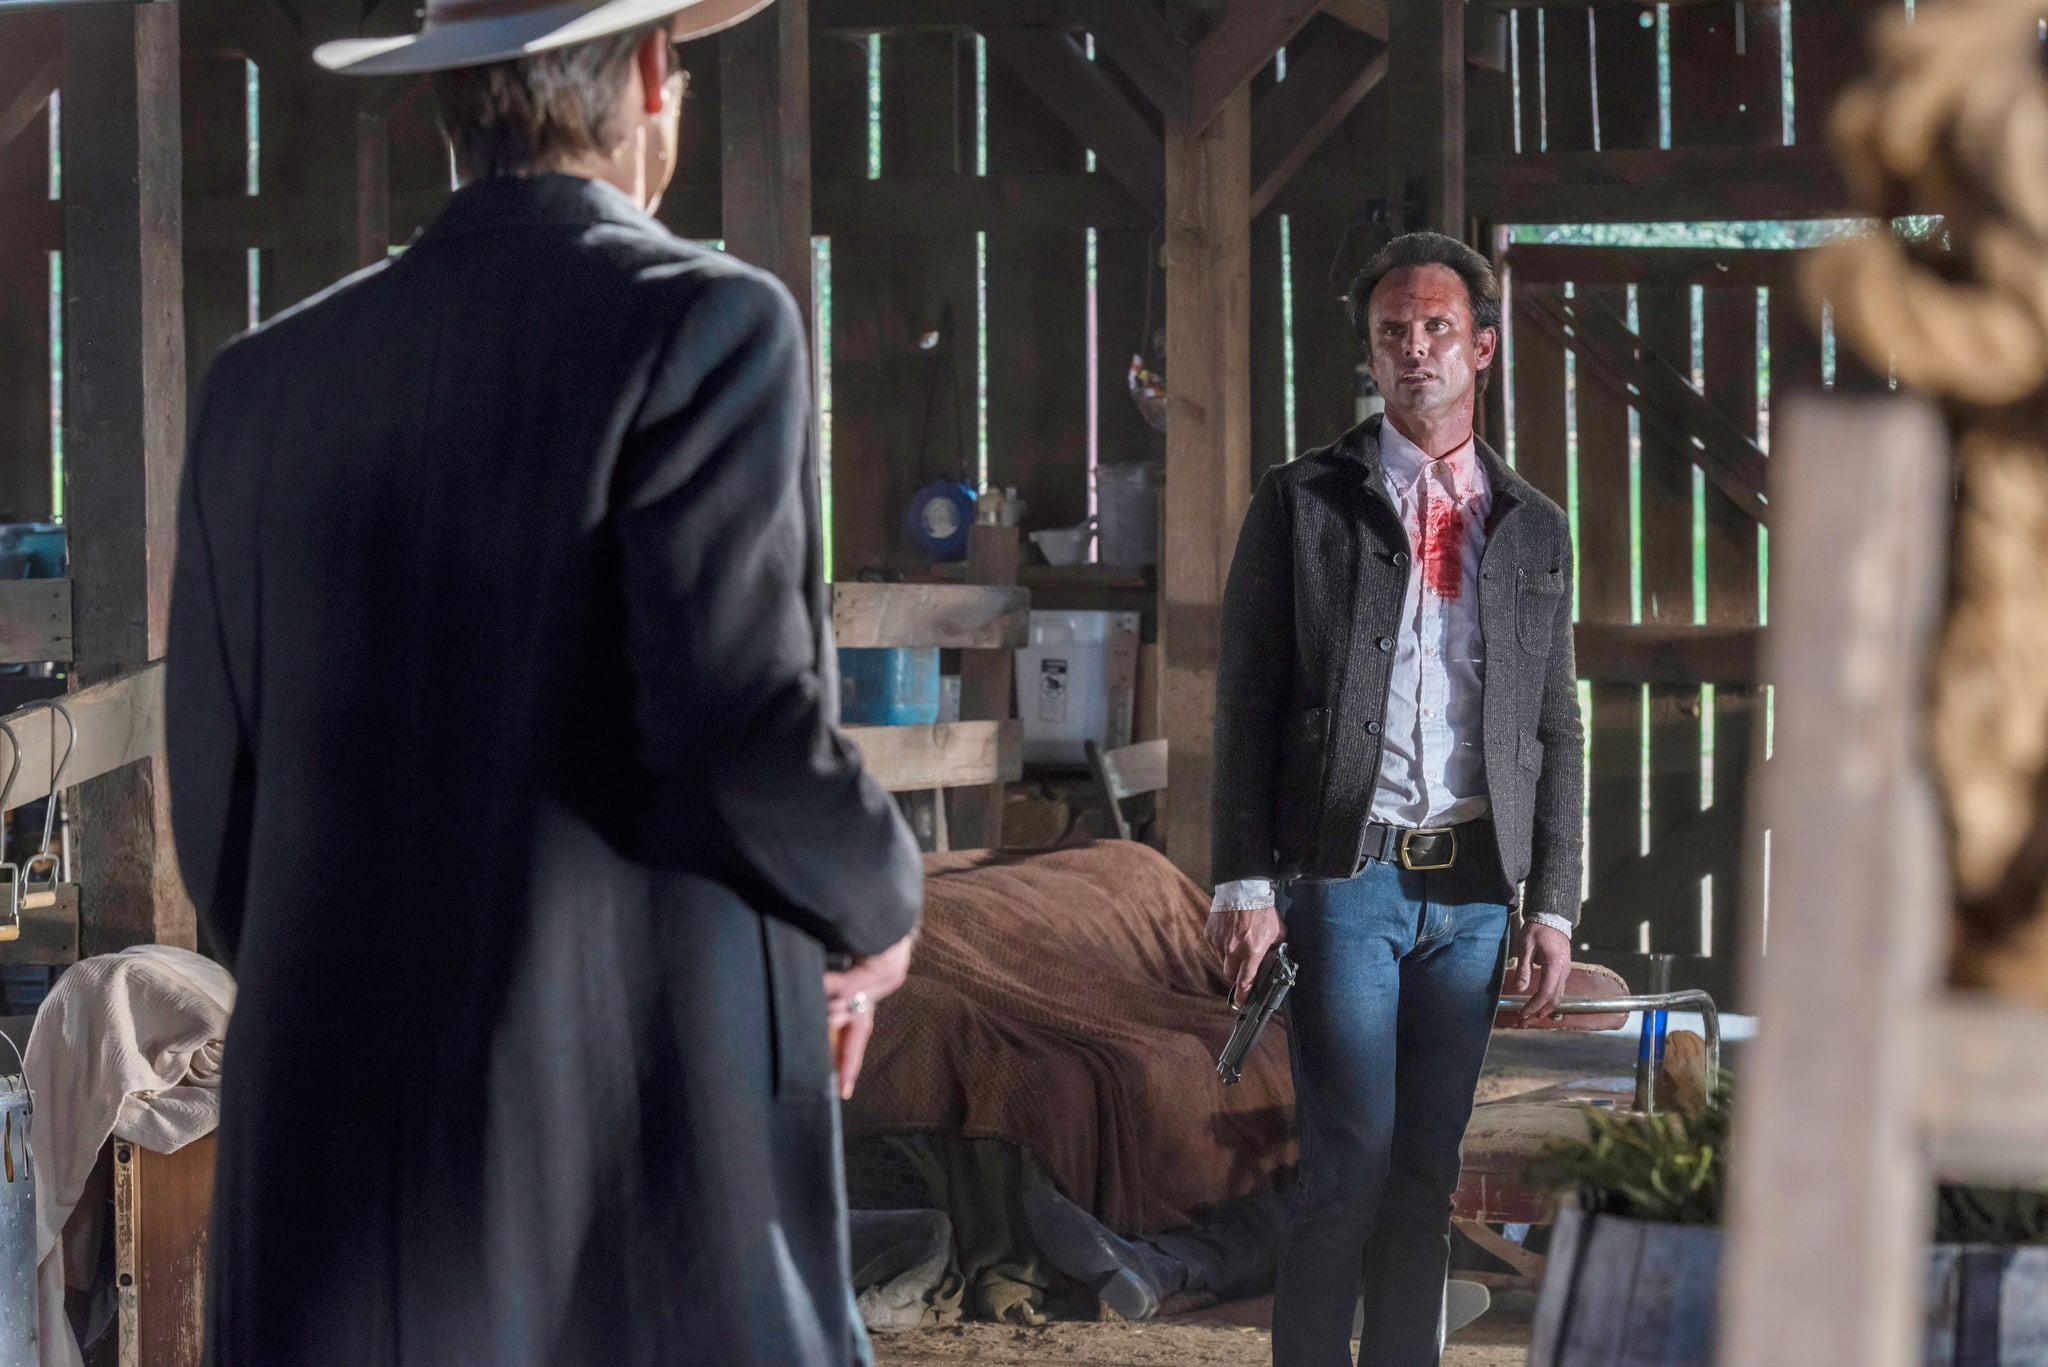 JUSTIFIED, (from left): Timothy Olyphant (back to camera), Walton Goggins, 'The Promise', (Season 6, ep. 613, aired April 14, 2015). photo: Prashant Gupta / FX / courtesy Everett Collection